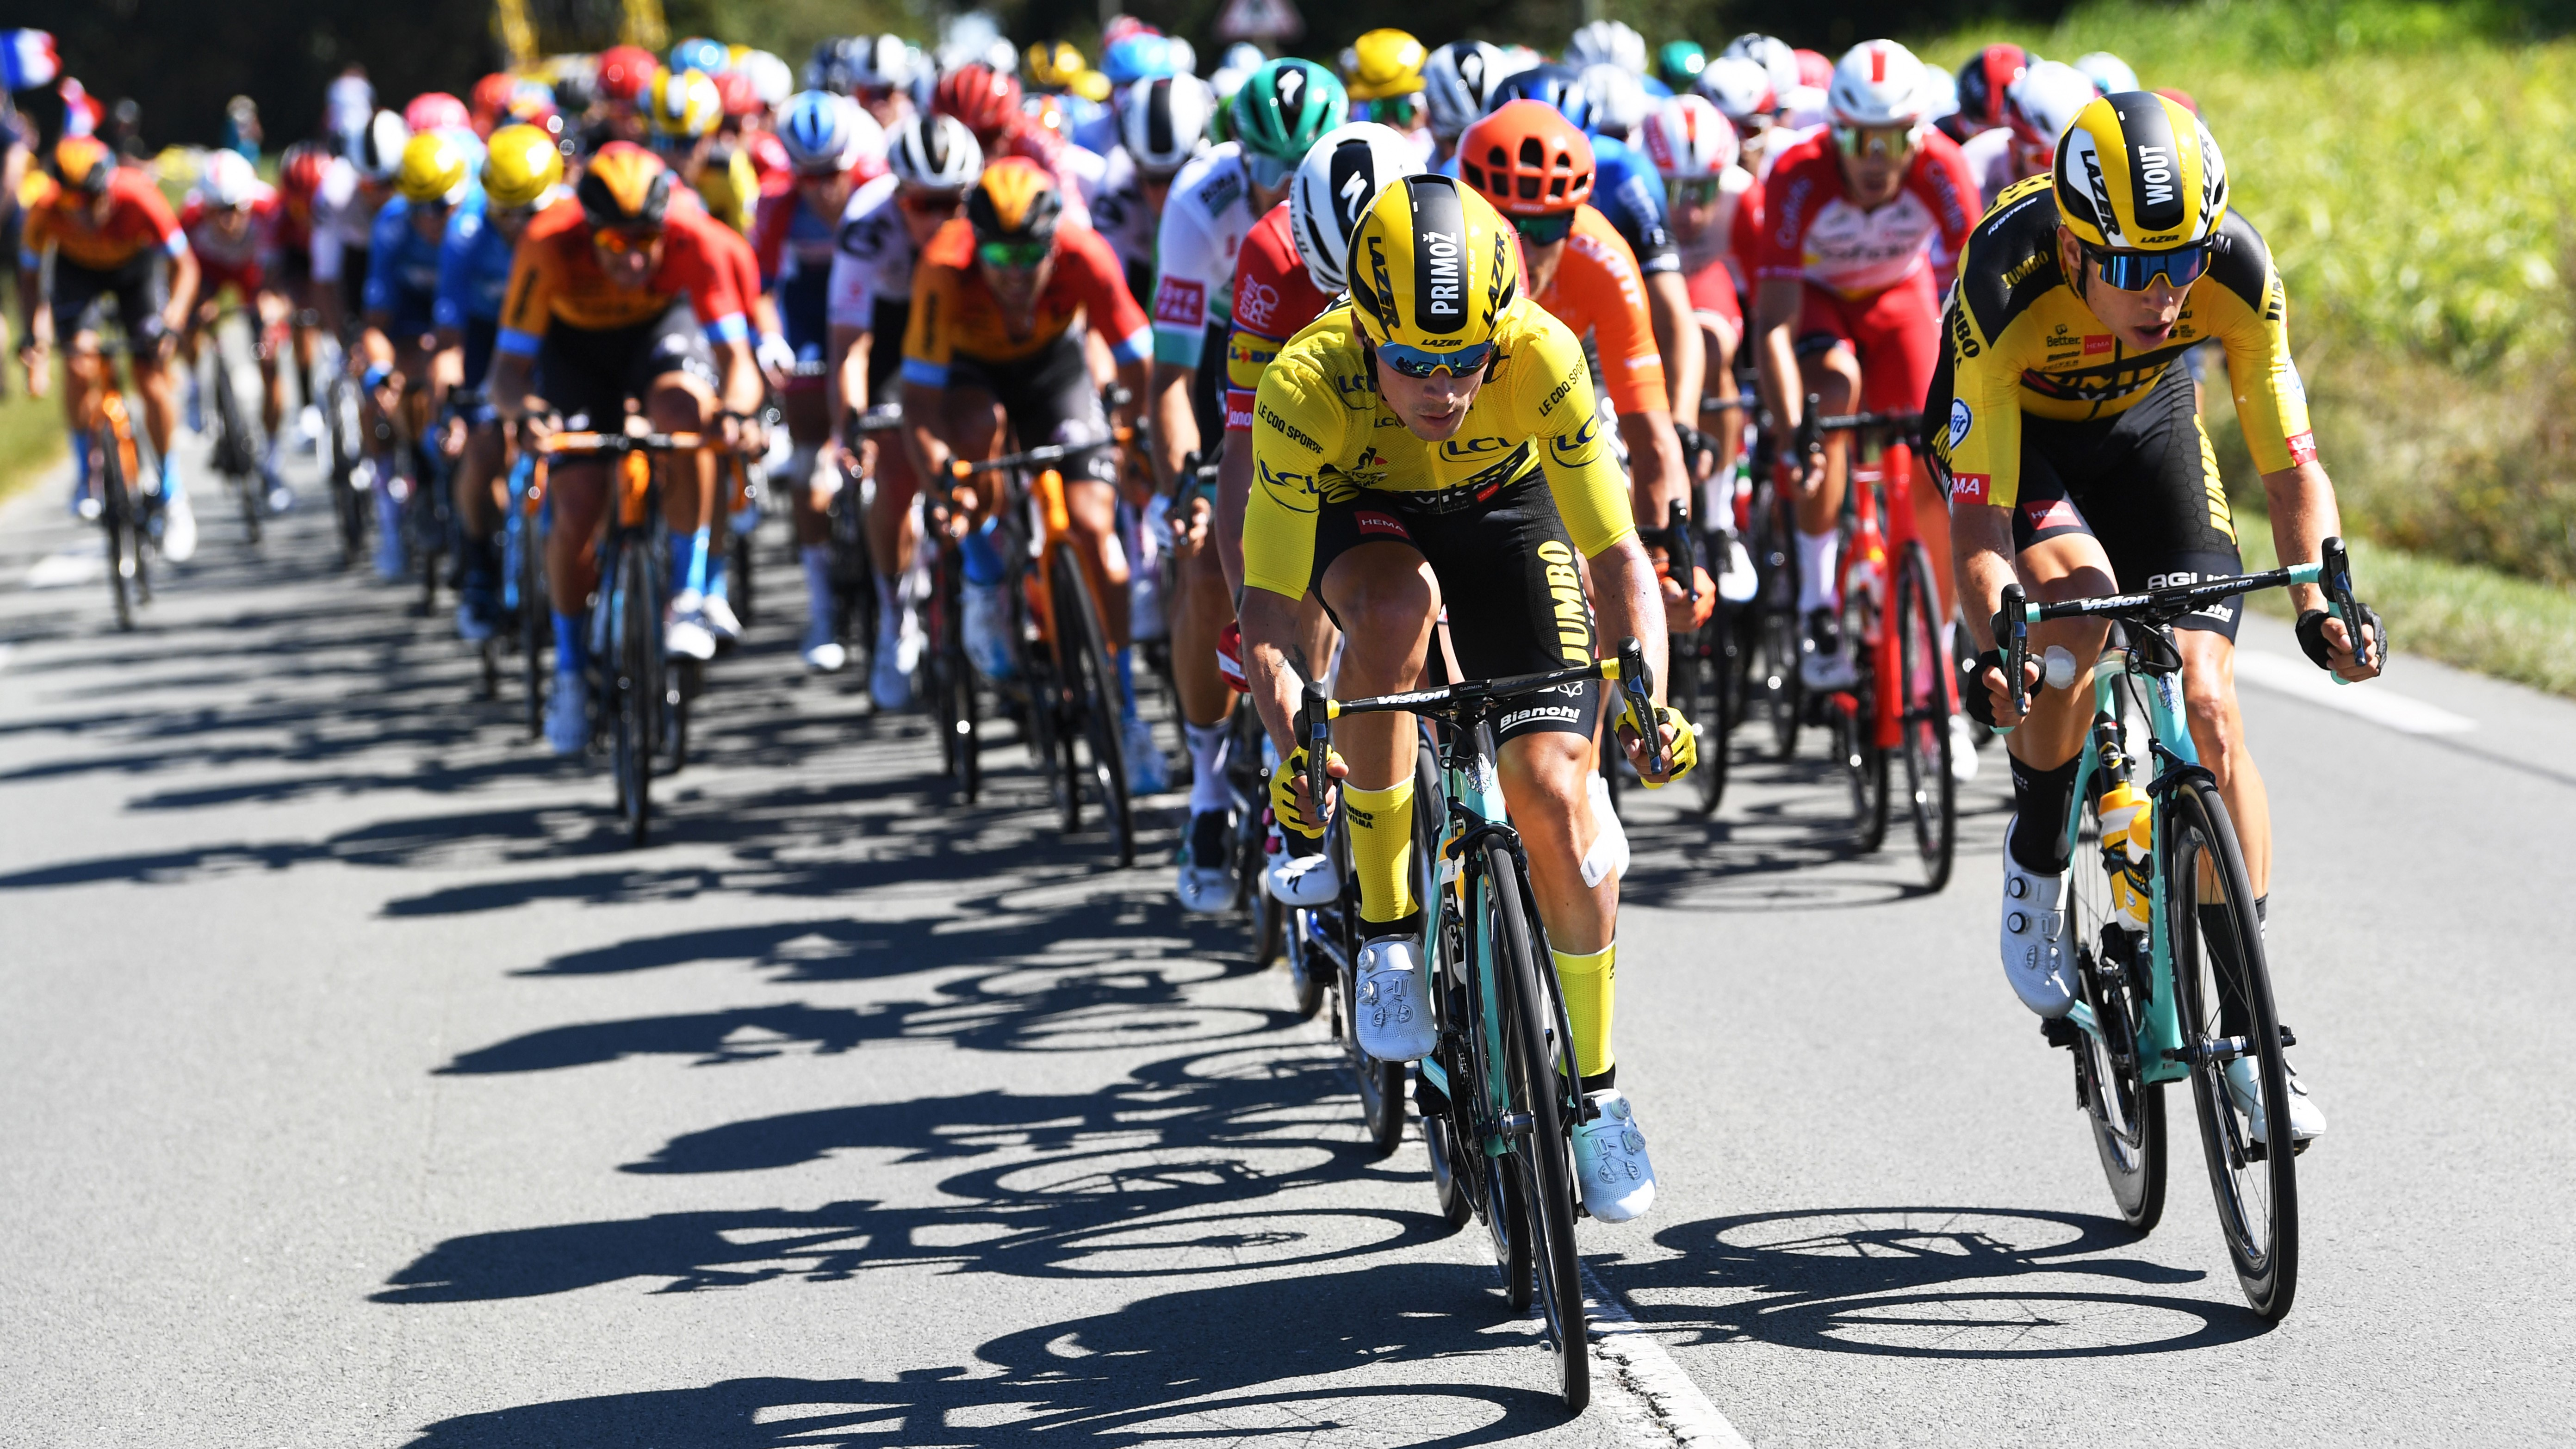 Tour de France live stream 2020: how to watch stage 11 of the race free today thumbnail